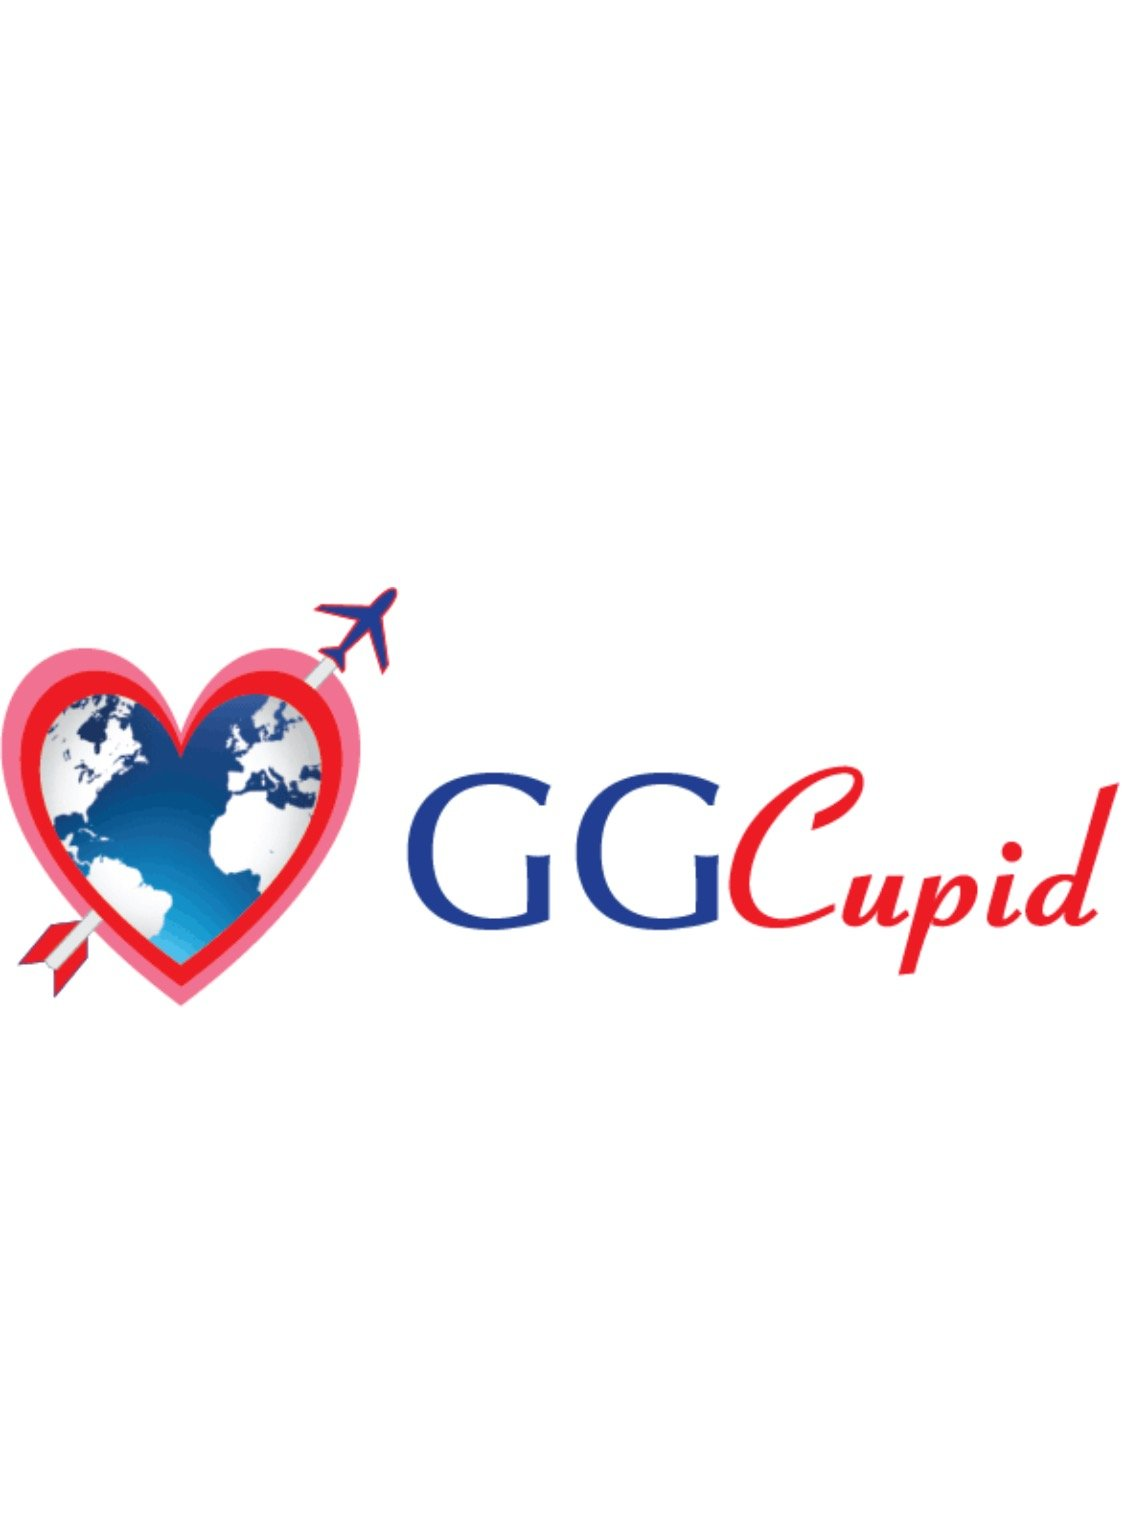 Cupid heart dating online